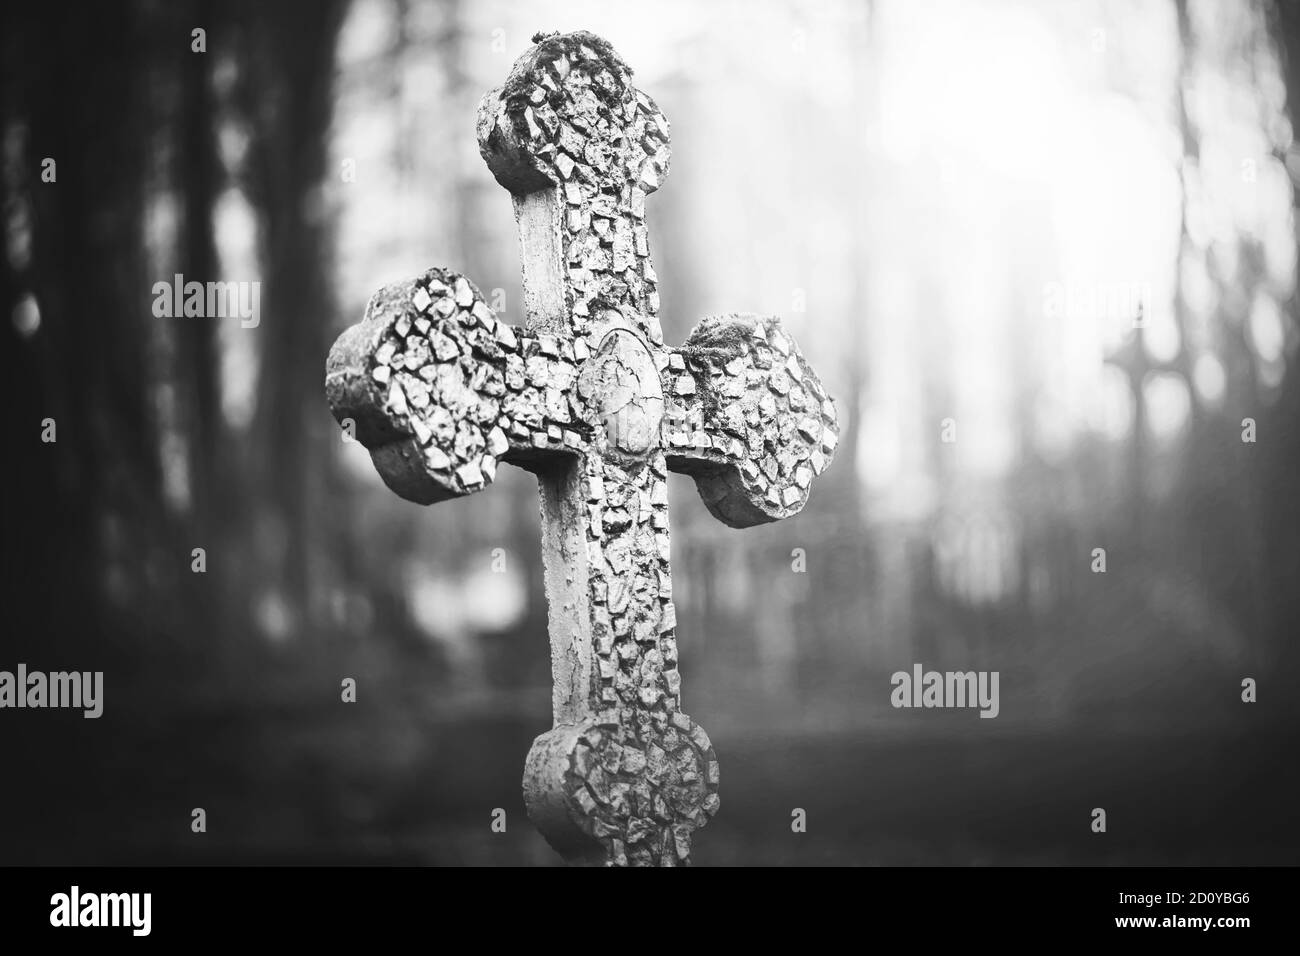 A black-and-white image of an old stone cracked cross standing in the middle of a foggy abandoned scary cemetery. Sadness. Death. Stock Photo